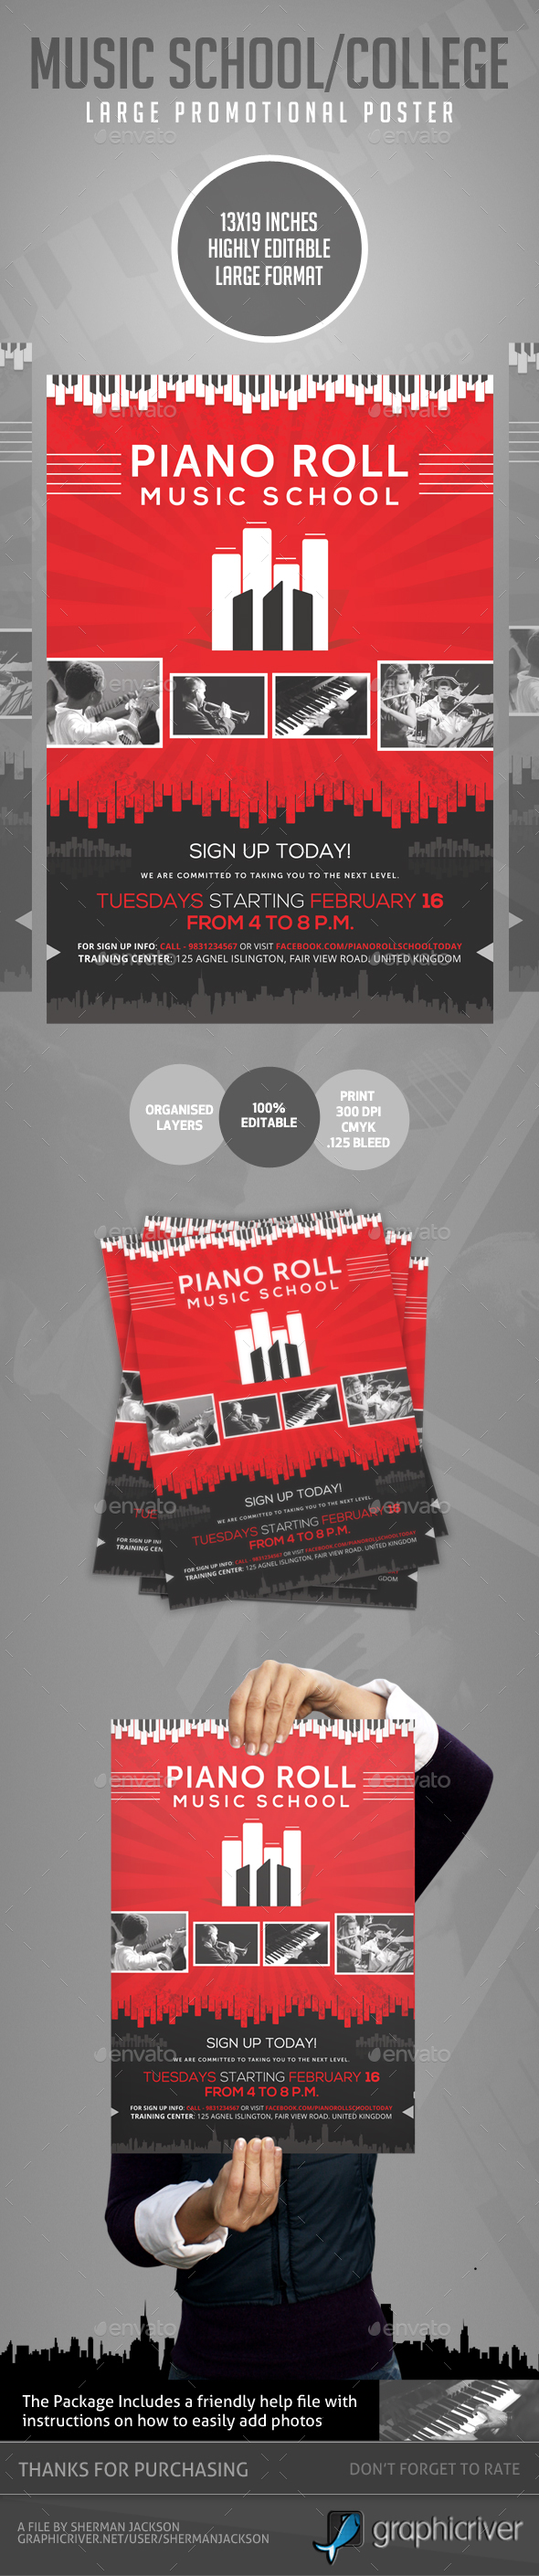 Music College & School Creative Promotional Poster - Miscellaneous Events